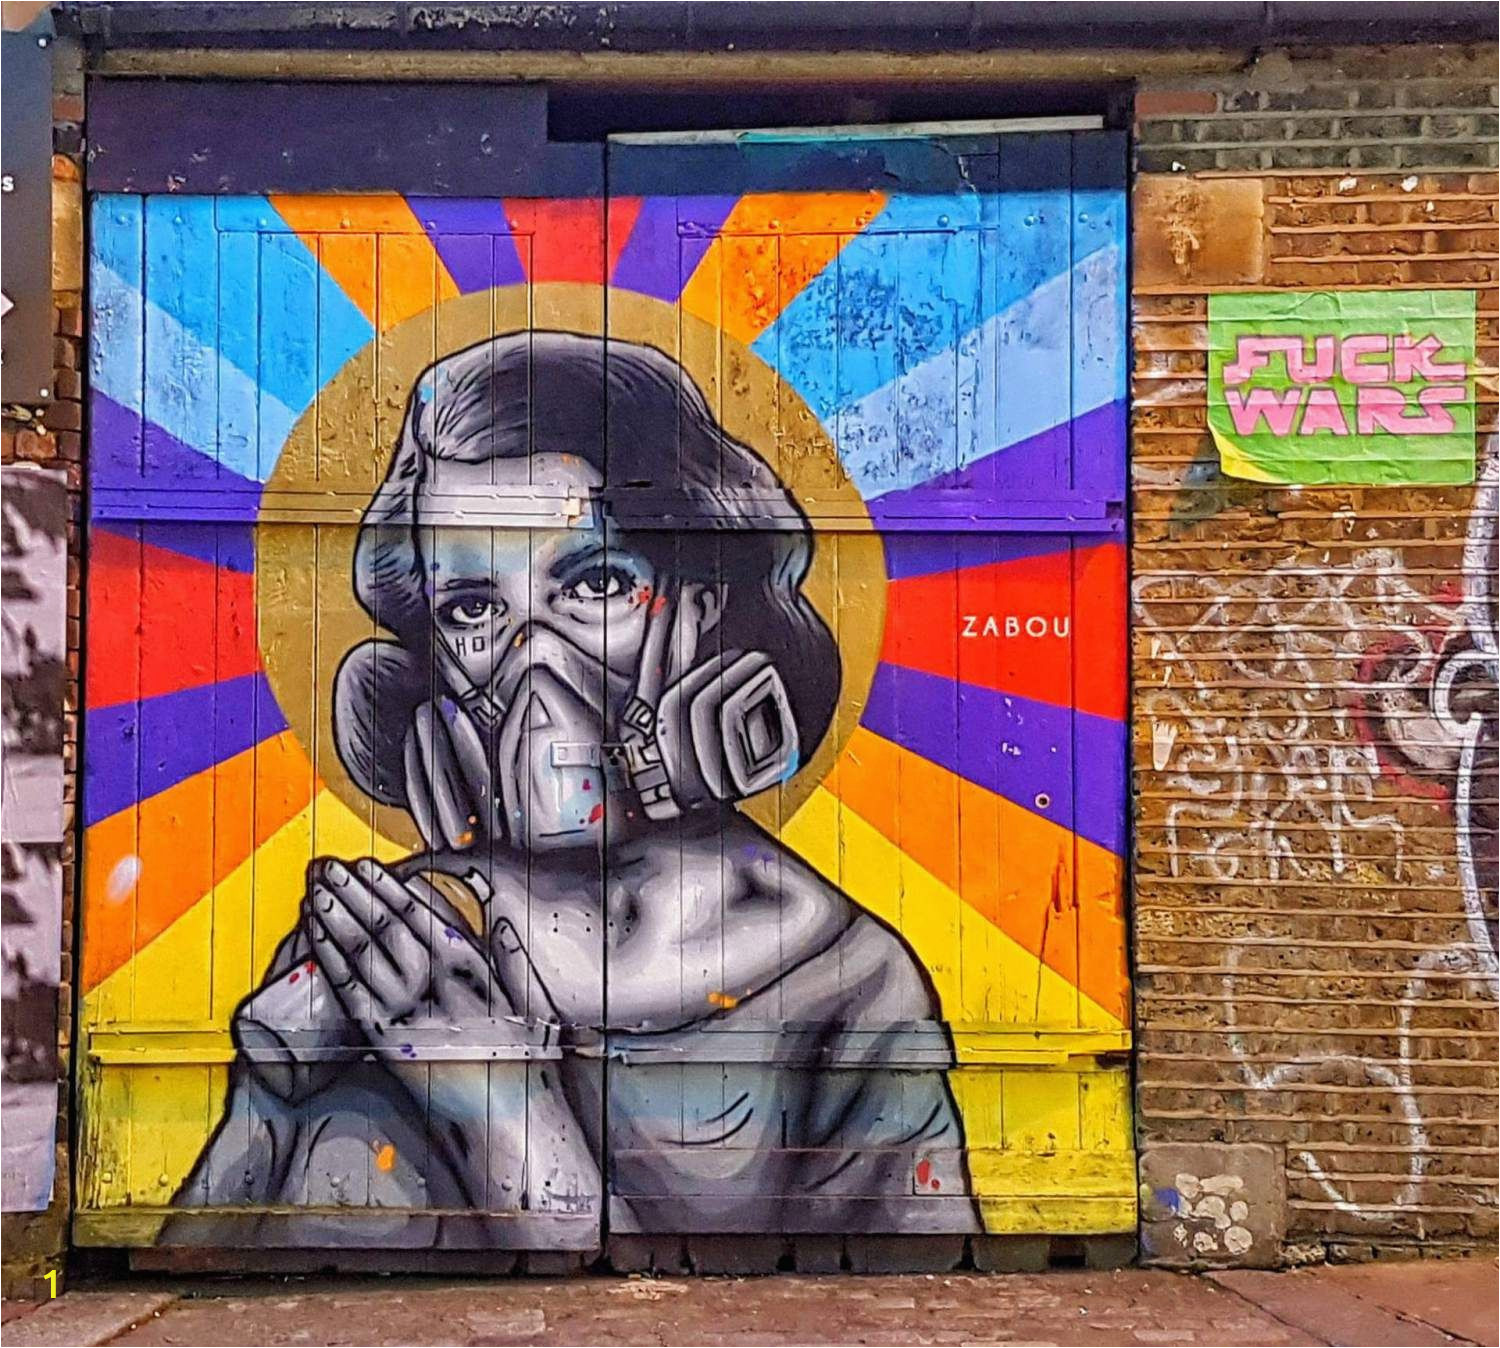 How to Paint A Mural On A Brick Wall Brick Lane Street Art the Most Beautiful In London